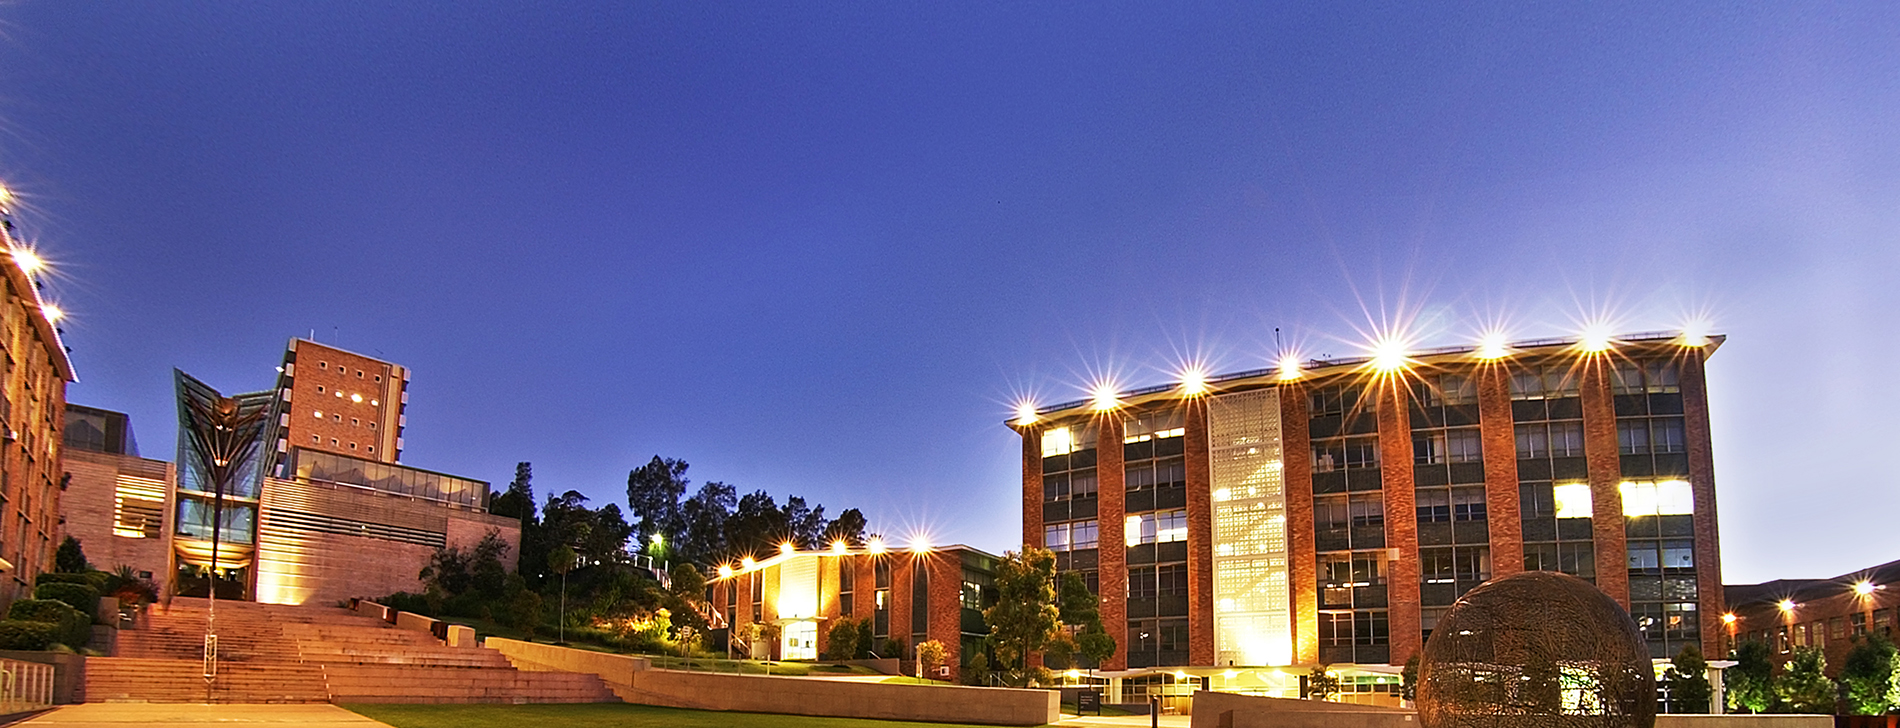 Scientia Building at UNSW